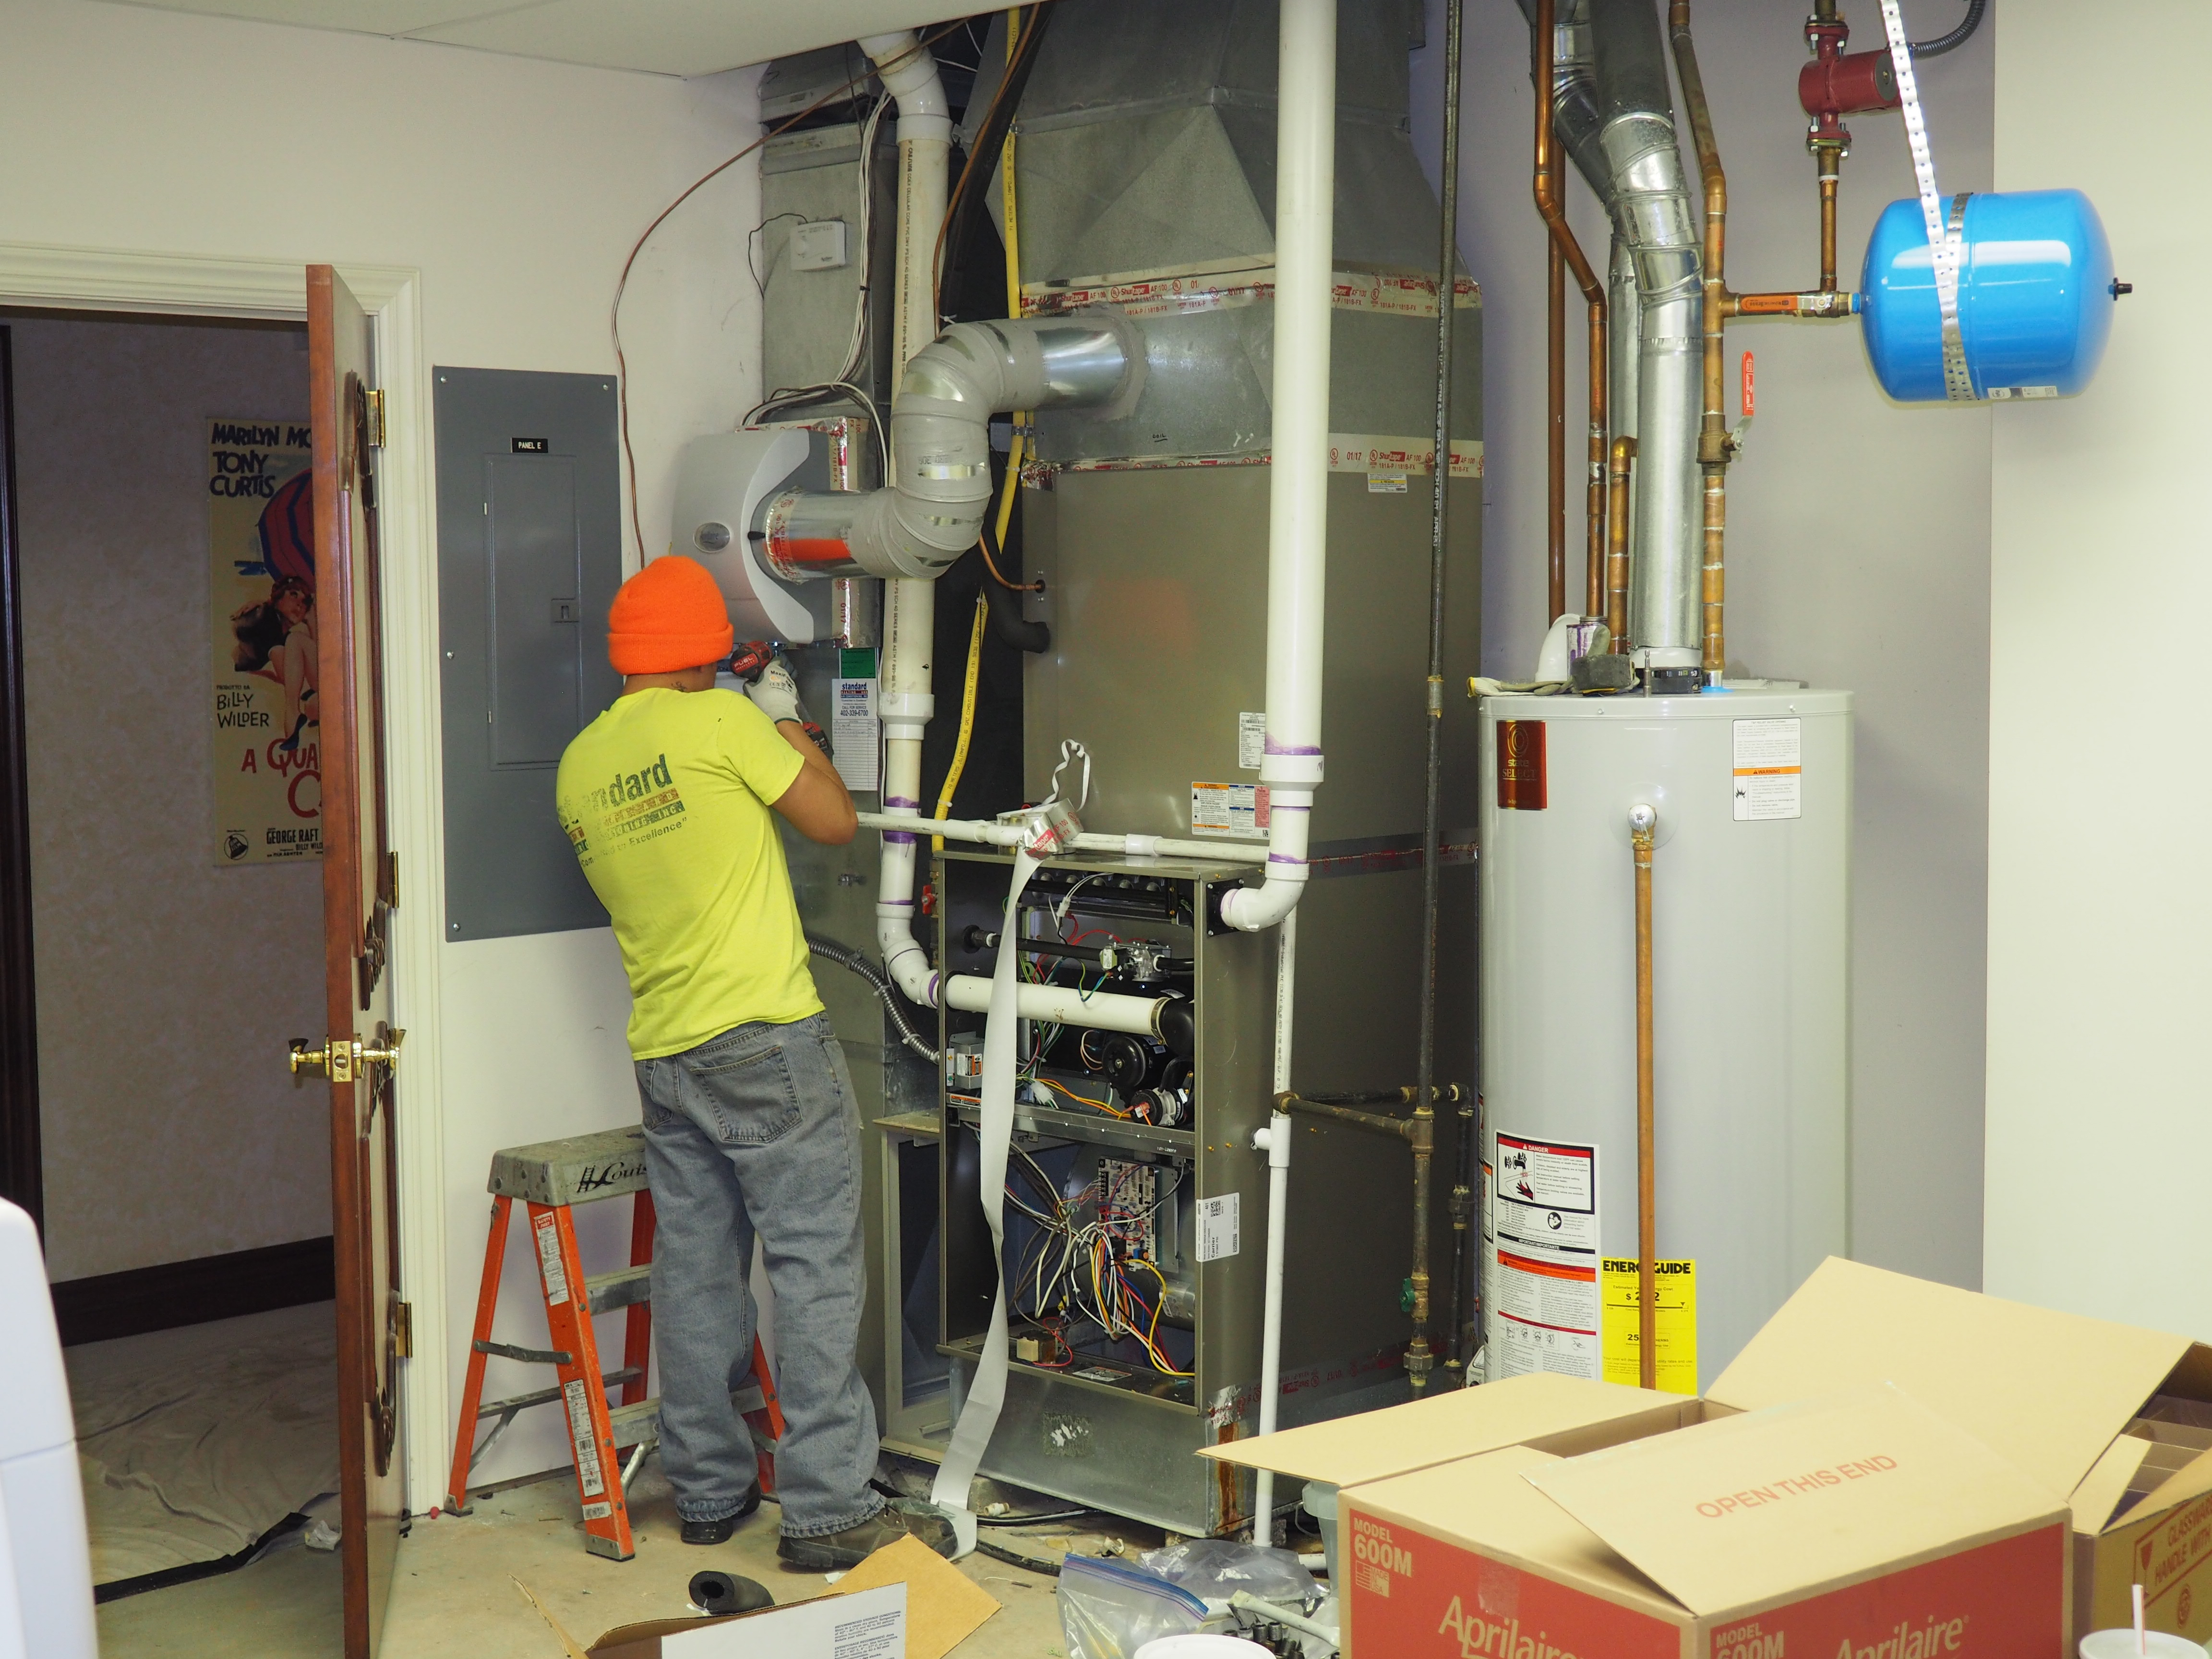 Standard Heating & Air Conditioning, Inc. image 3